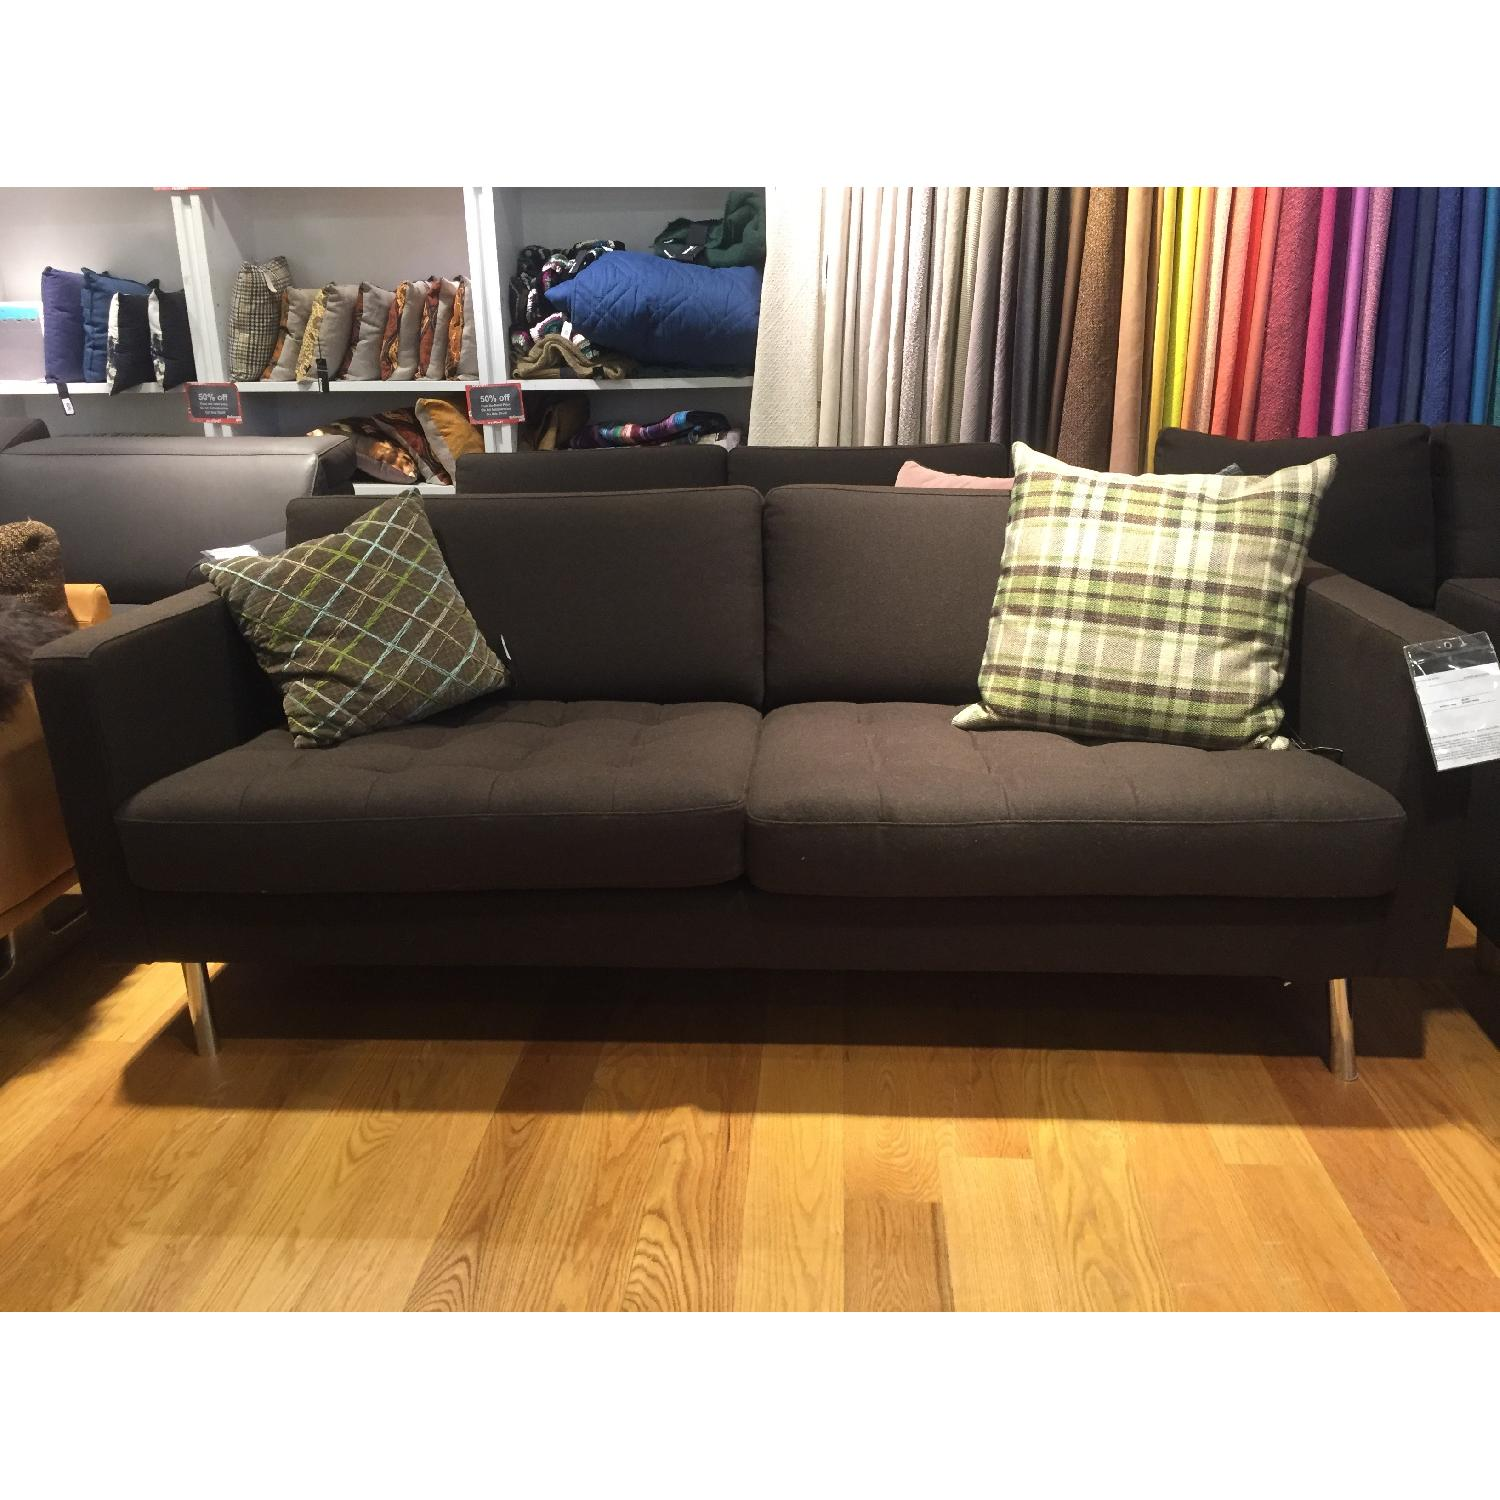 BoConcept Olympia Sofa in Chocolate Lux - image-2